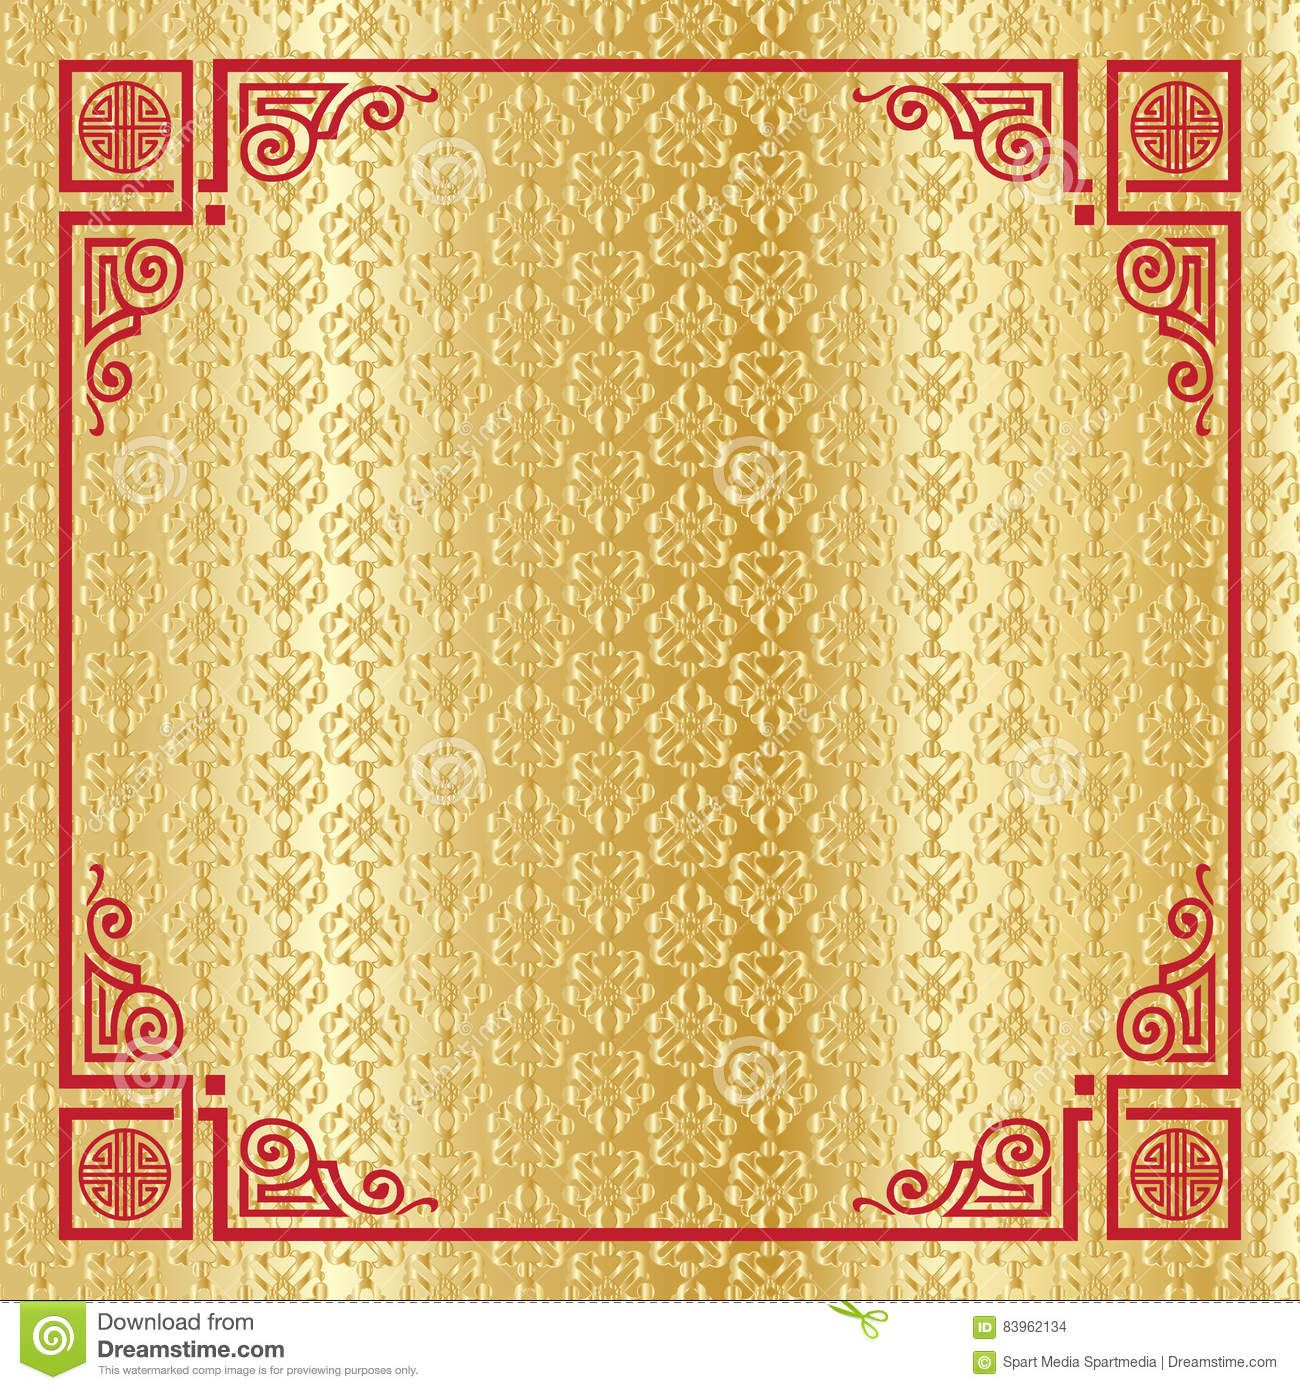 Chinese New Year 2019 greeting card gold background